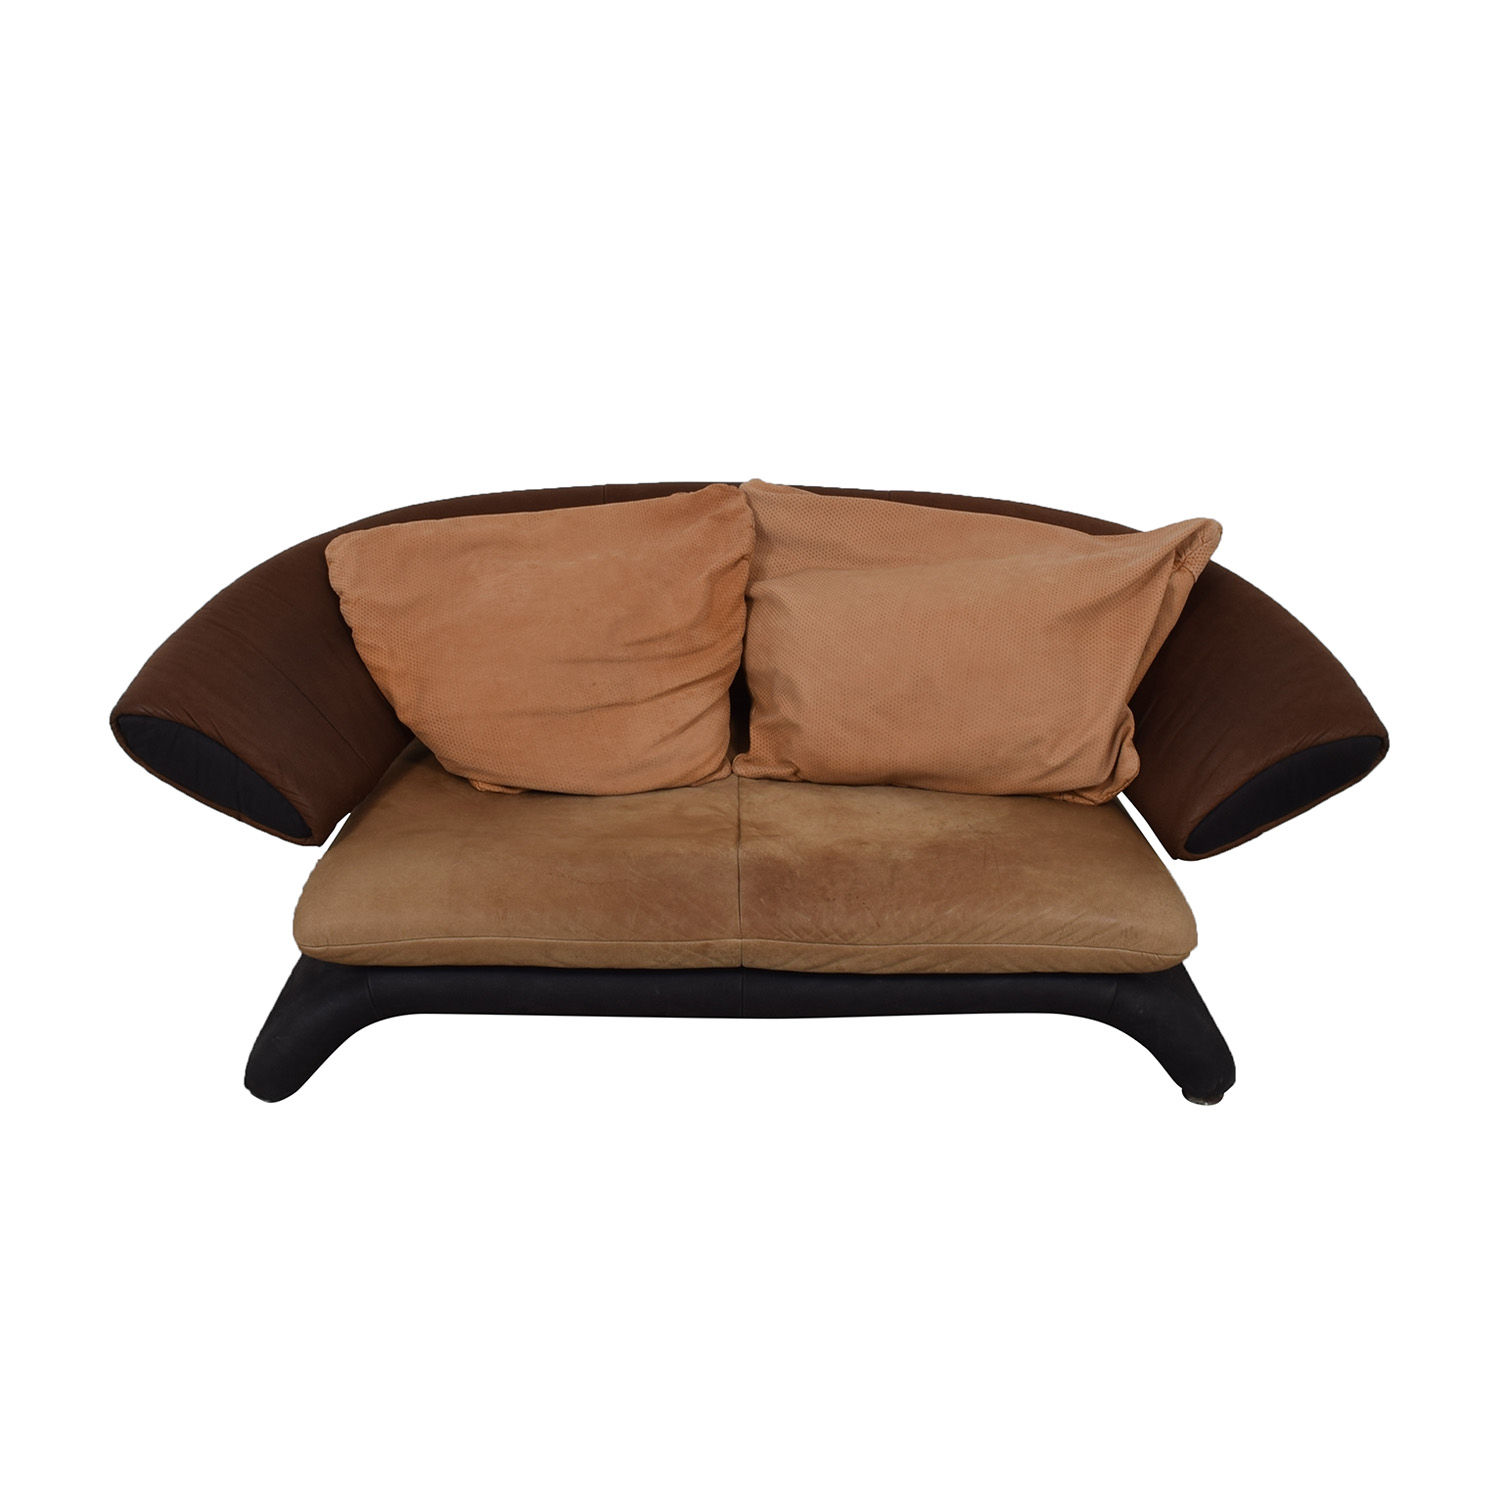 Koinor Koinor Brown Multi-Colored Love Seat on sale